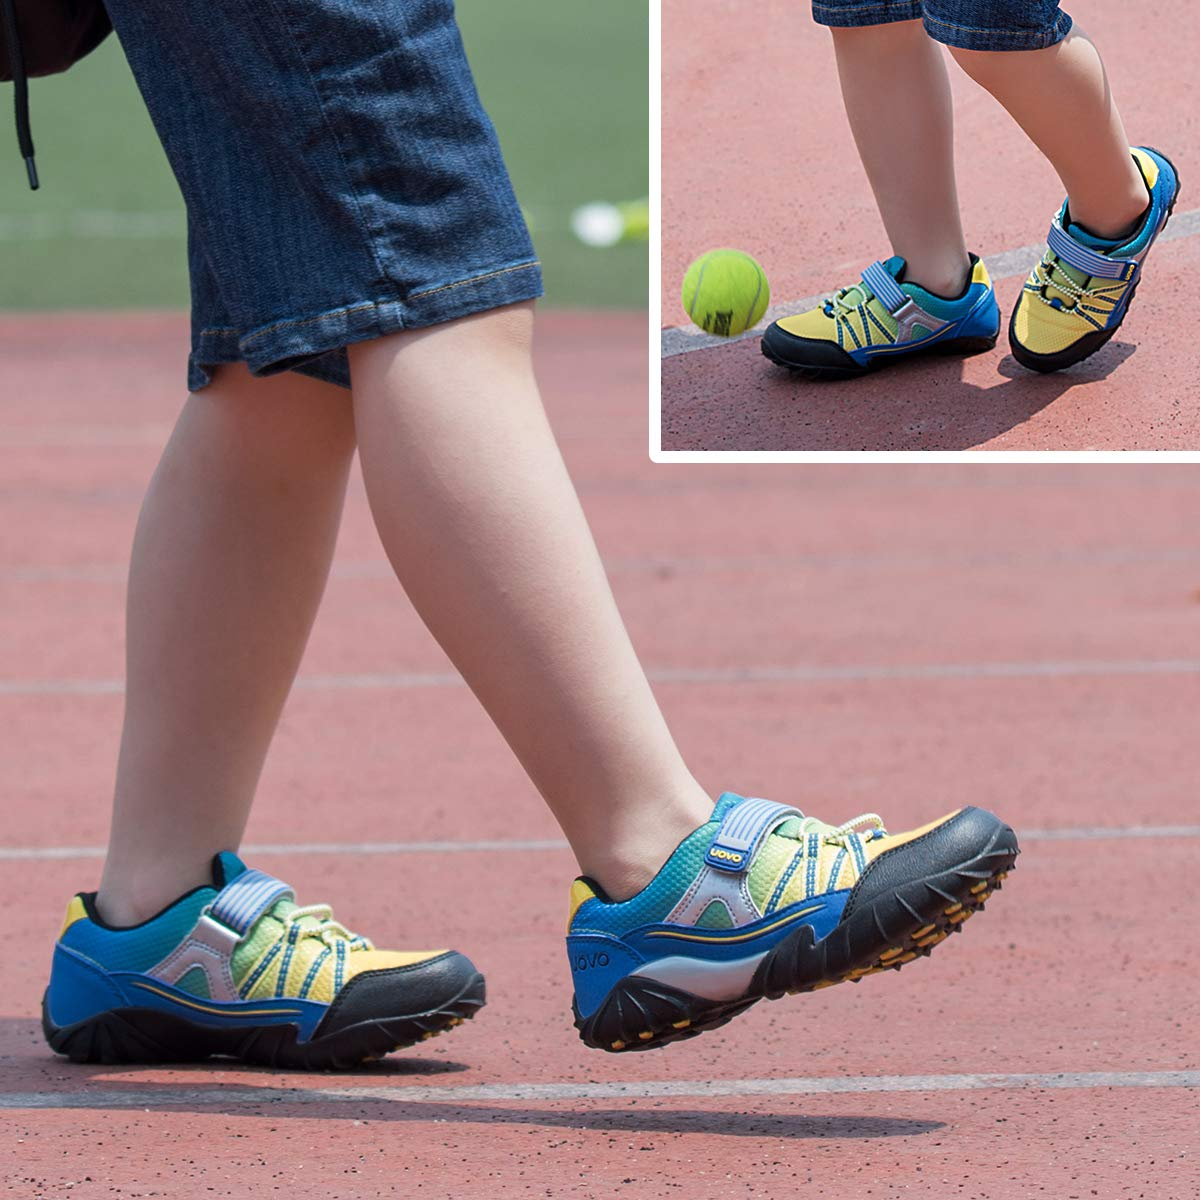 UOVO Little Boys Shoes Running Sneakers Kids Hiking Athletic Tennis Shoes for Toddler Boys Blue by UOVO (Image #7)